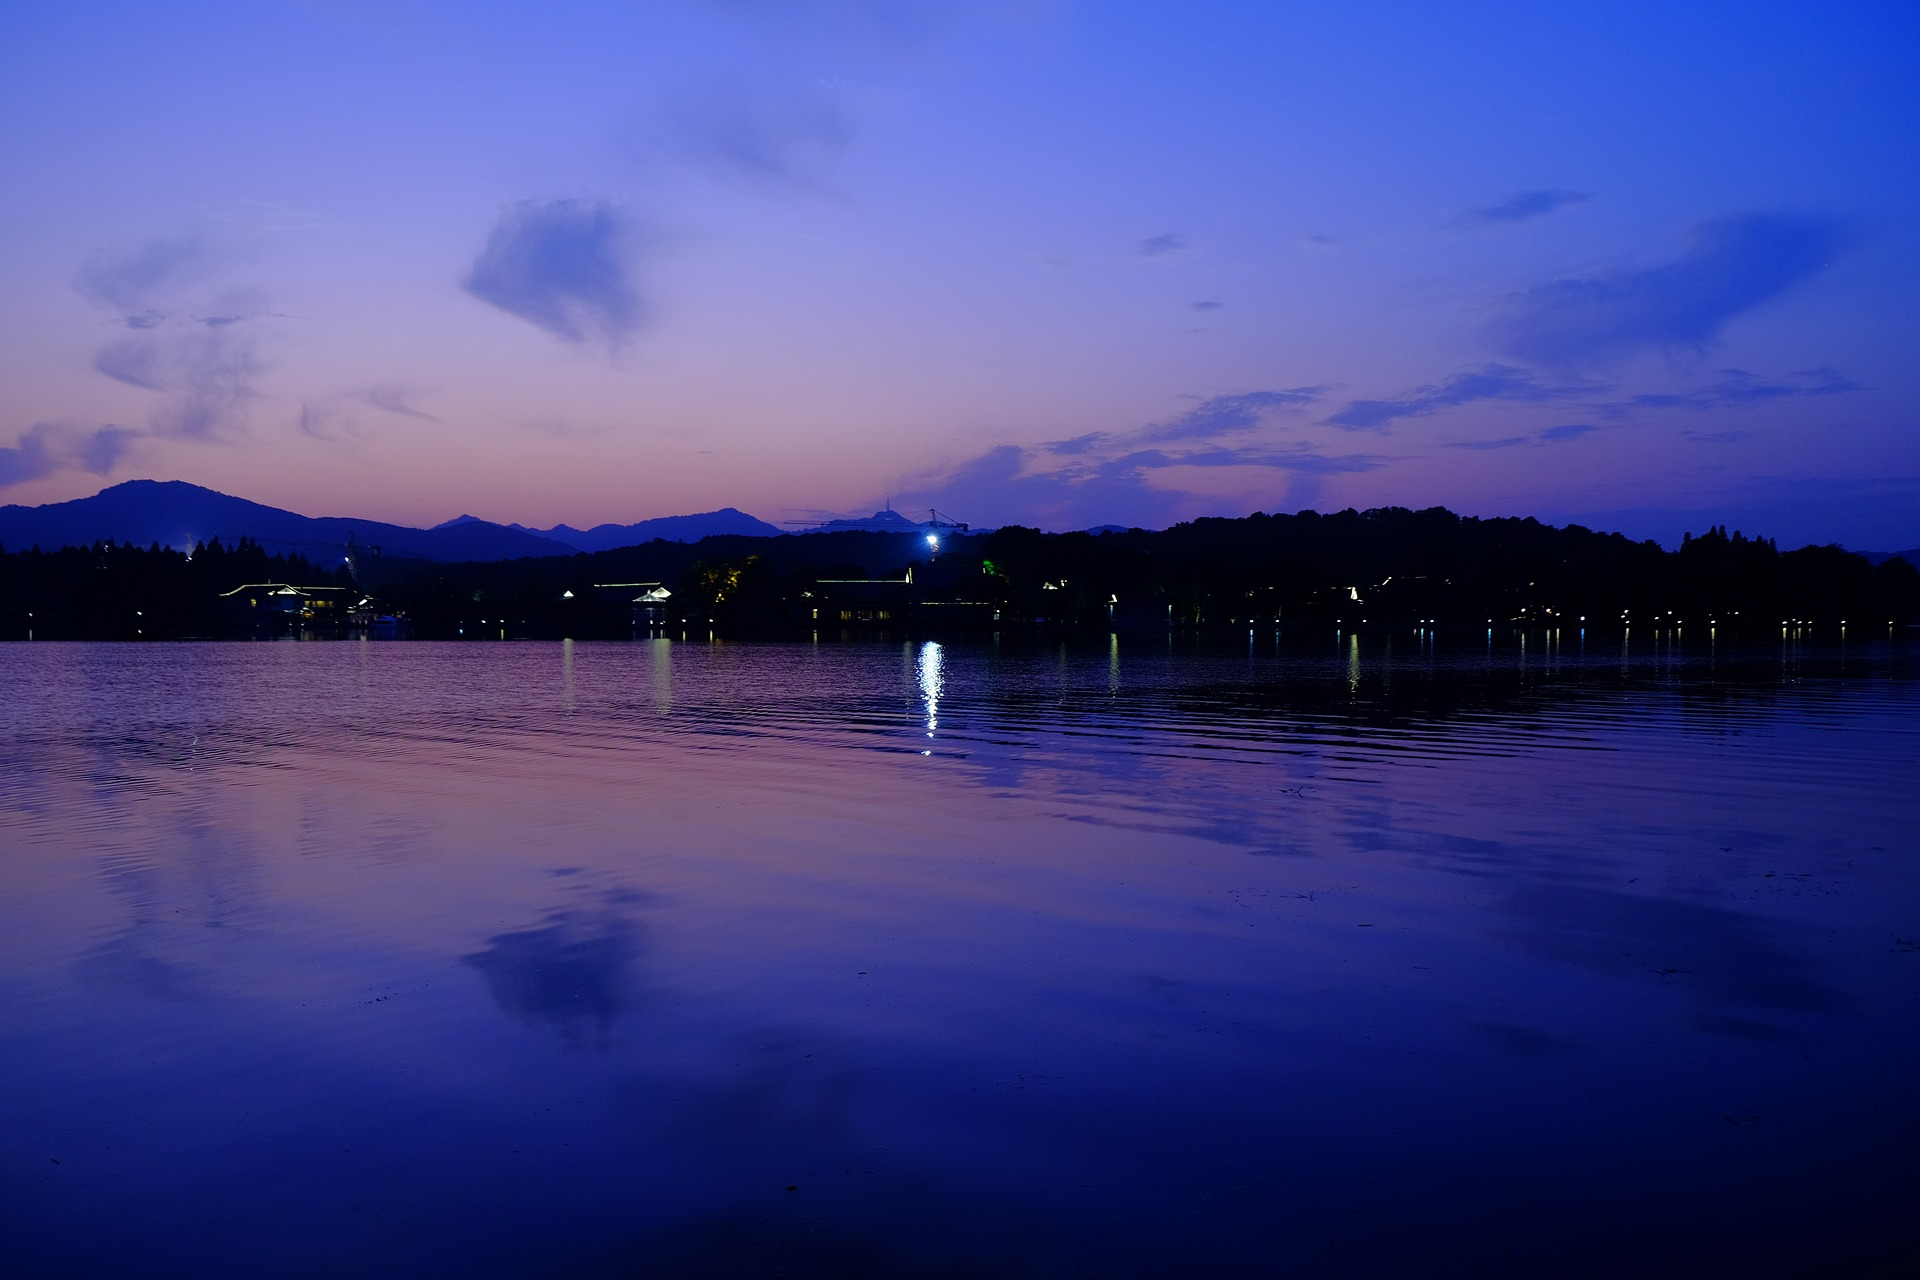 West Lake in Hangzhou, China